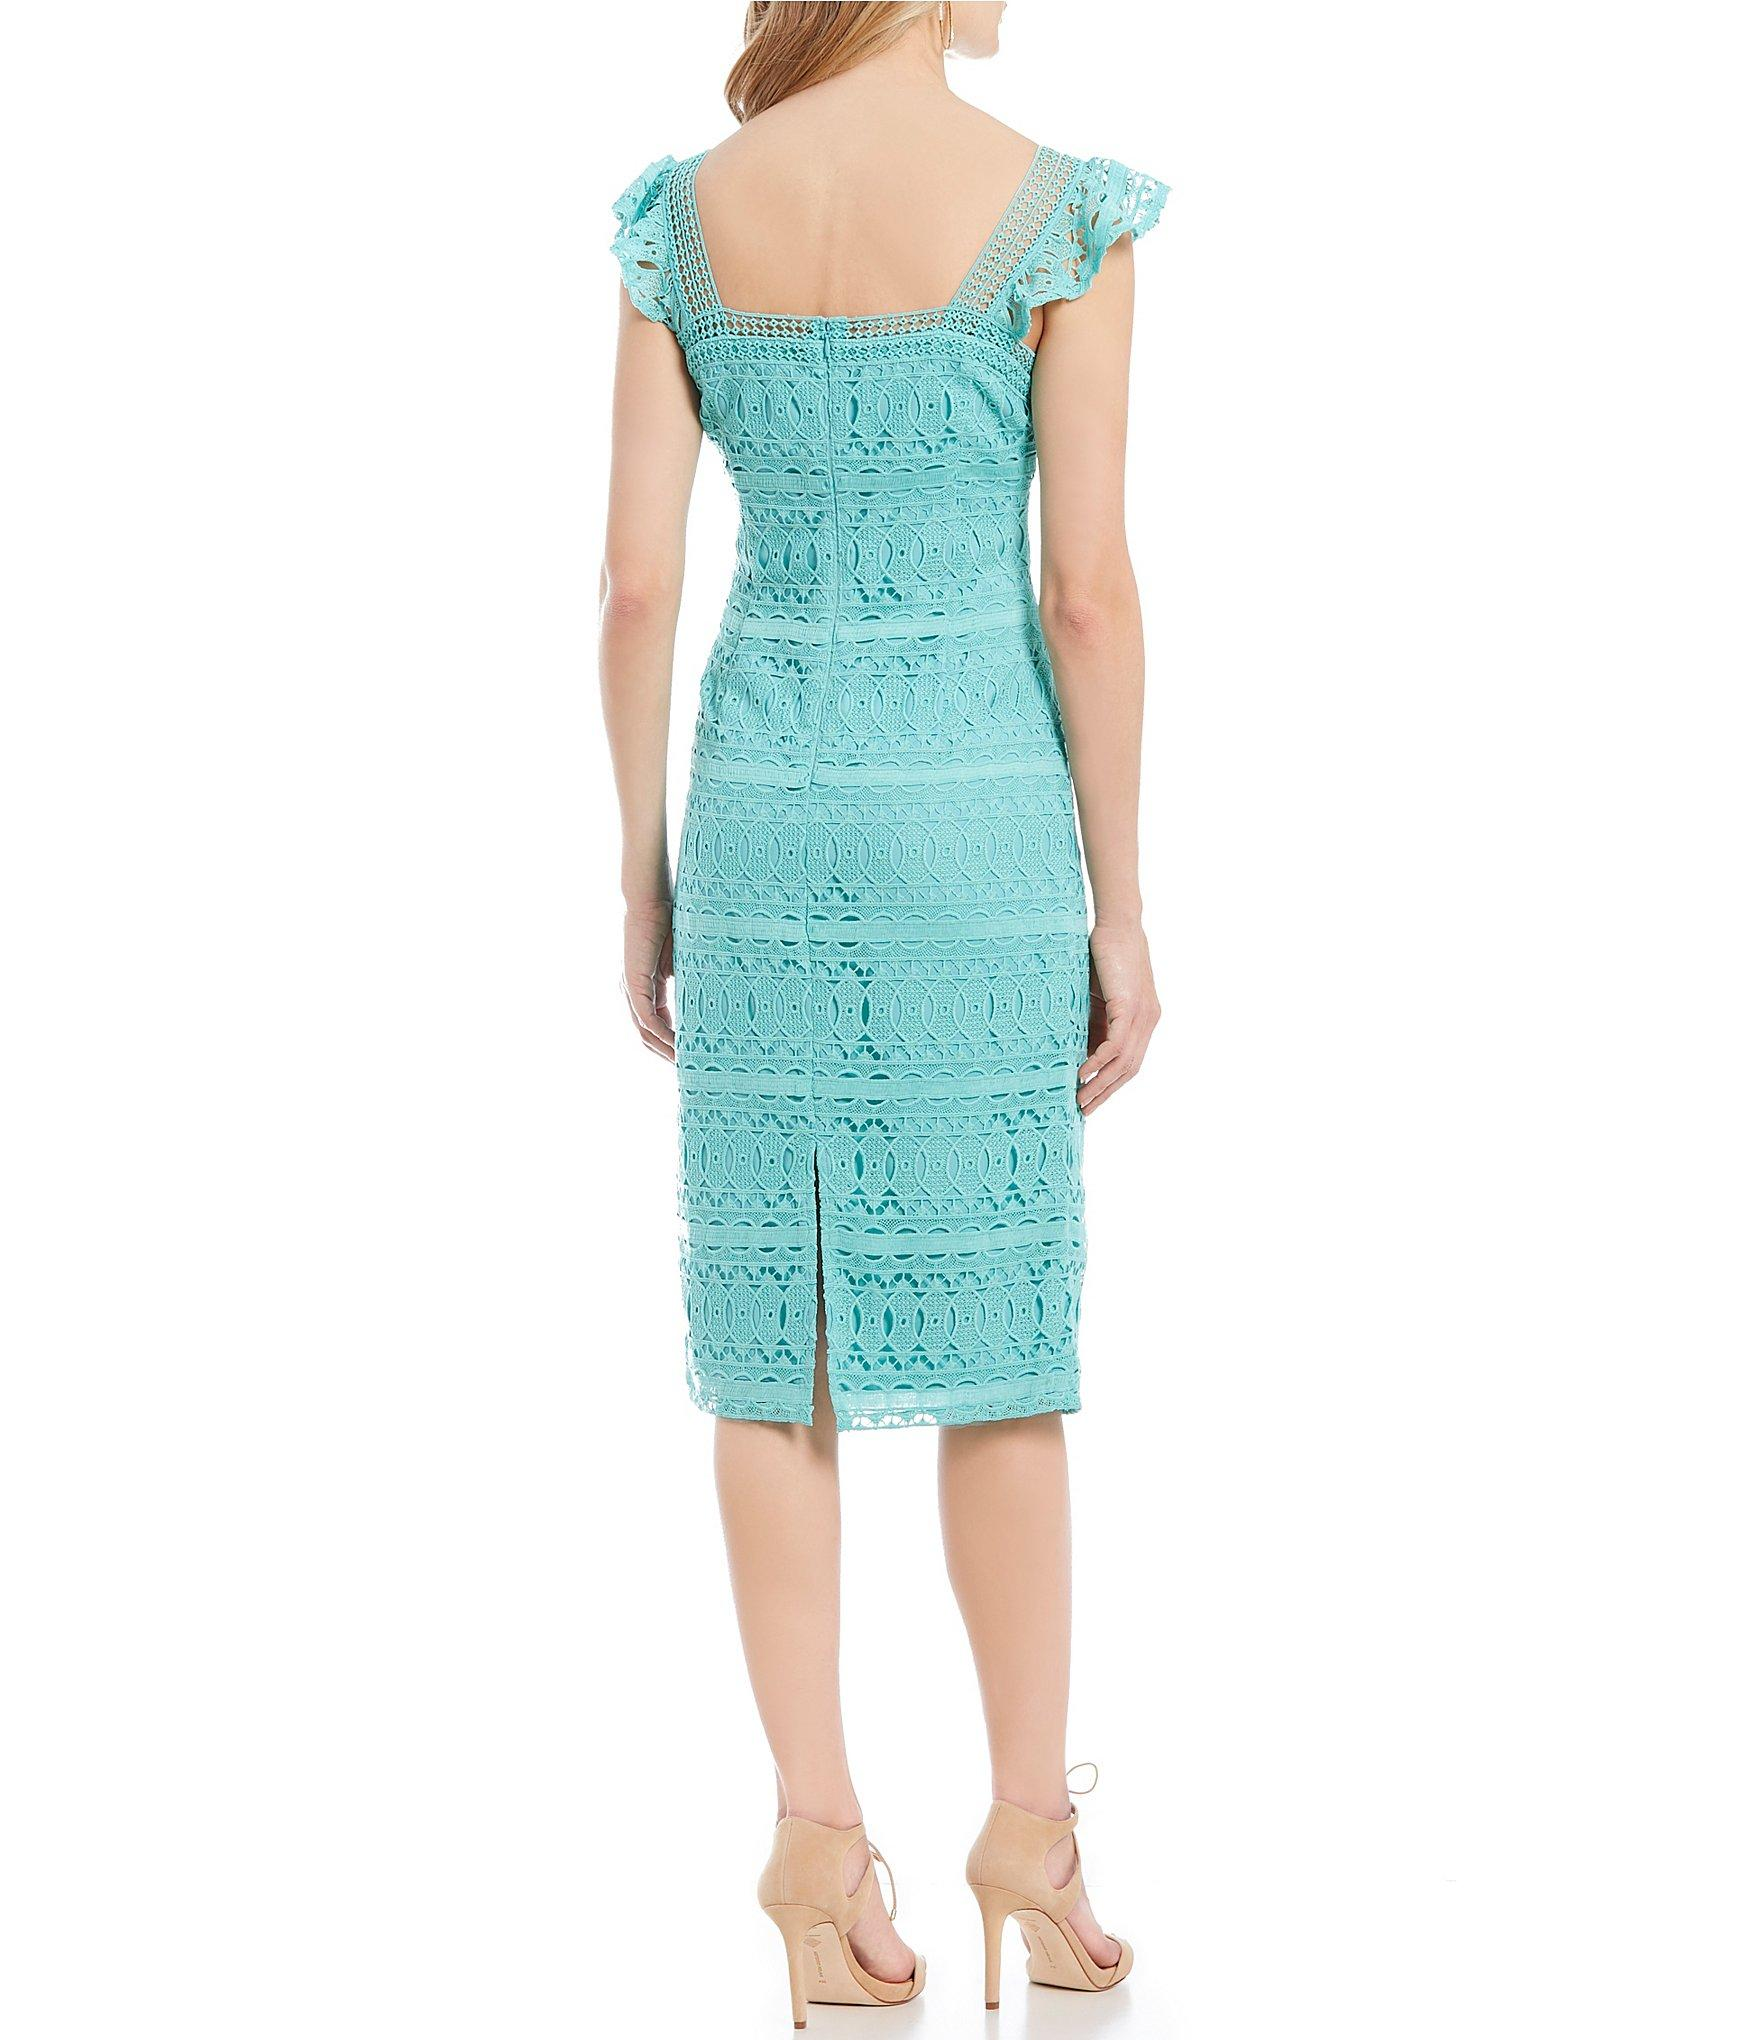 d593ee25f6a Antonio Melani - Blue Cameron Square Neck Flutter Cap Sleeve Midi Dress -  Lyst. View fullscreen